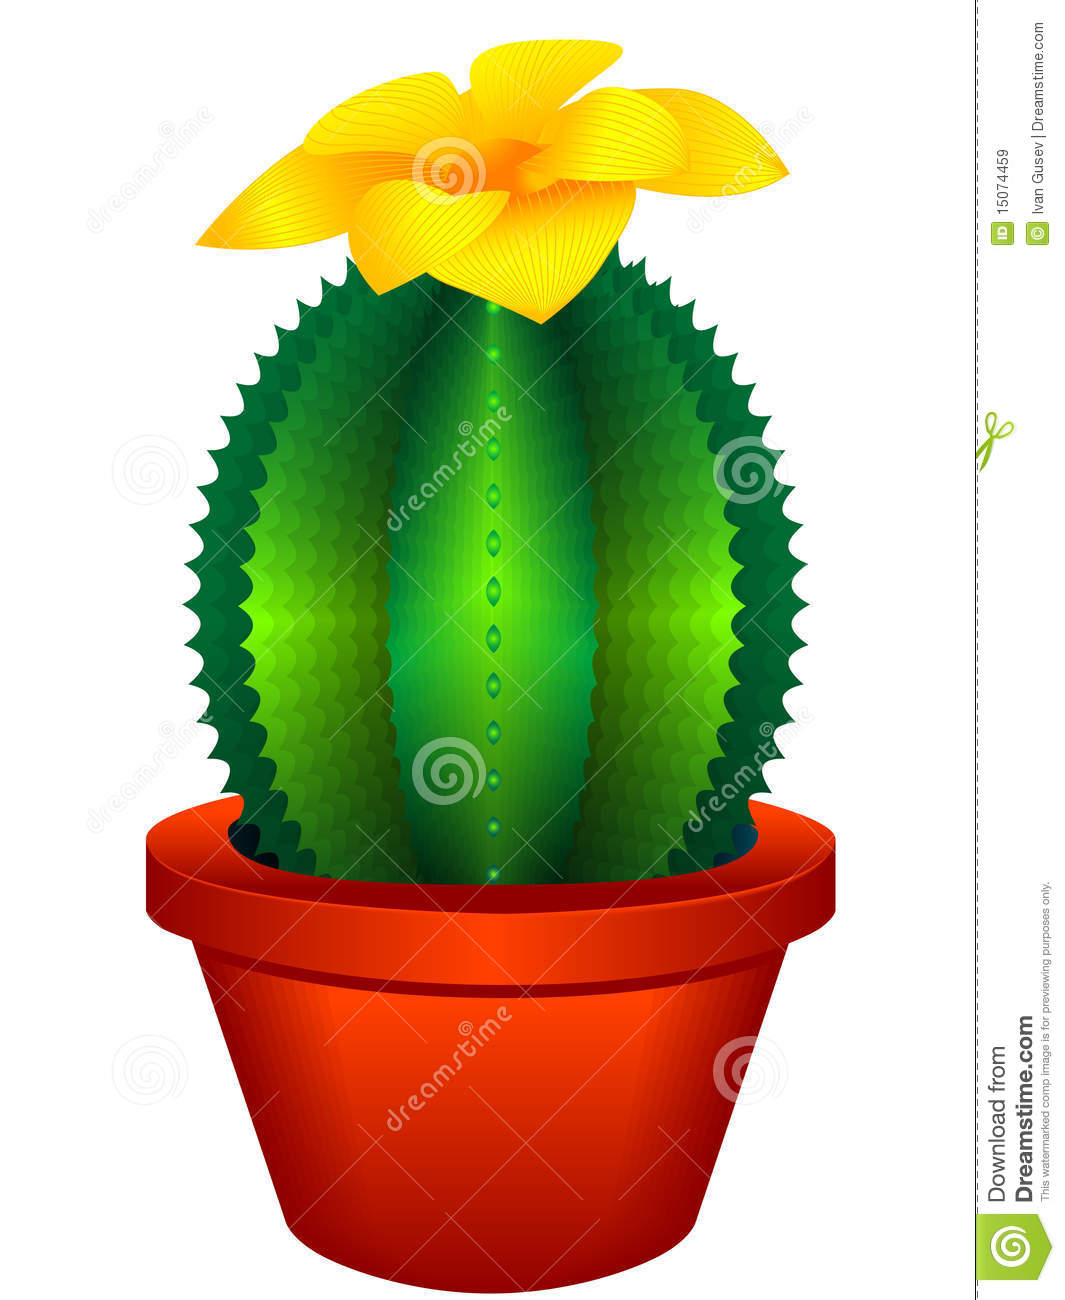 Indoor Plant A Cactus Royalty Free Stock Images   Image  15074459